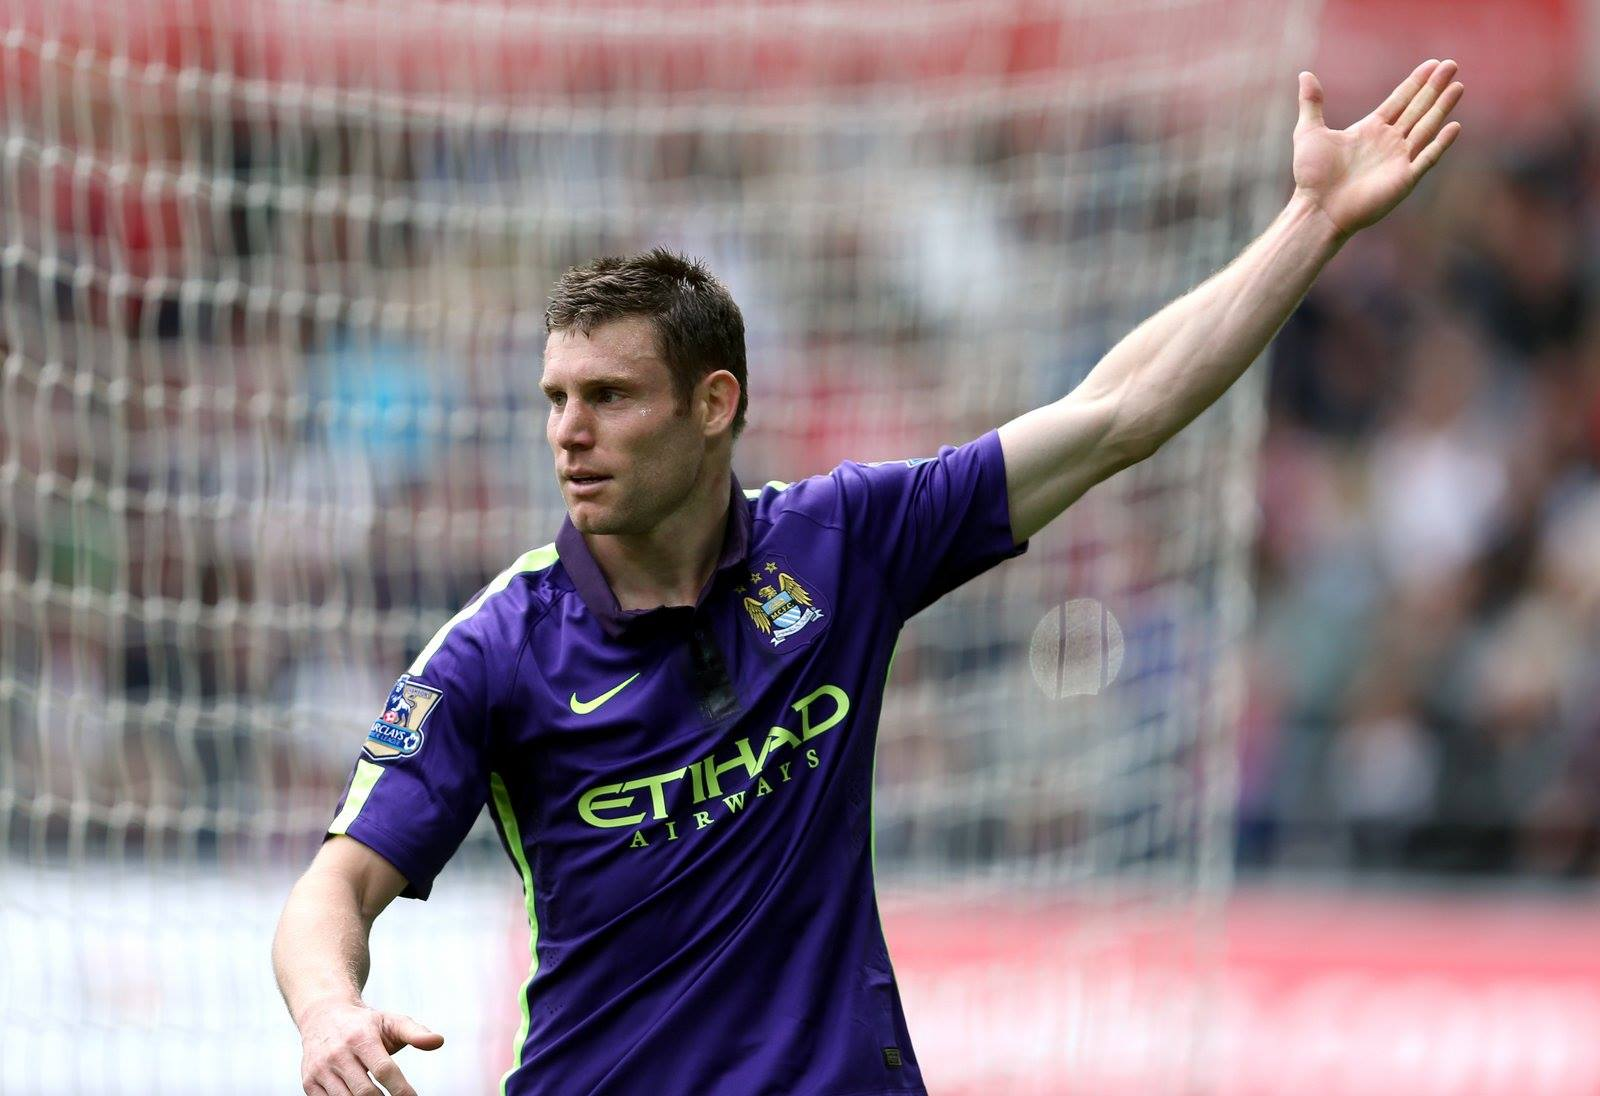 Final salute - Milner scored at Swansea before leaving City and heading down the East Lancs Road to Liverpool. Courtesy@MCFC